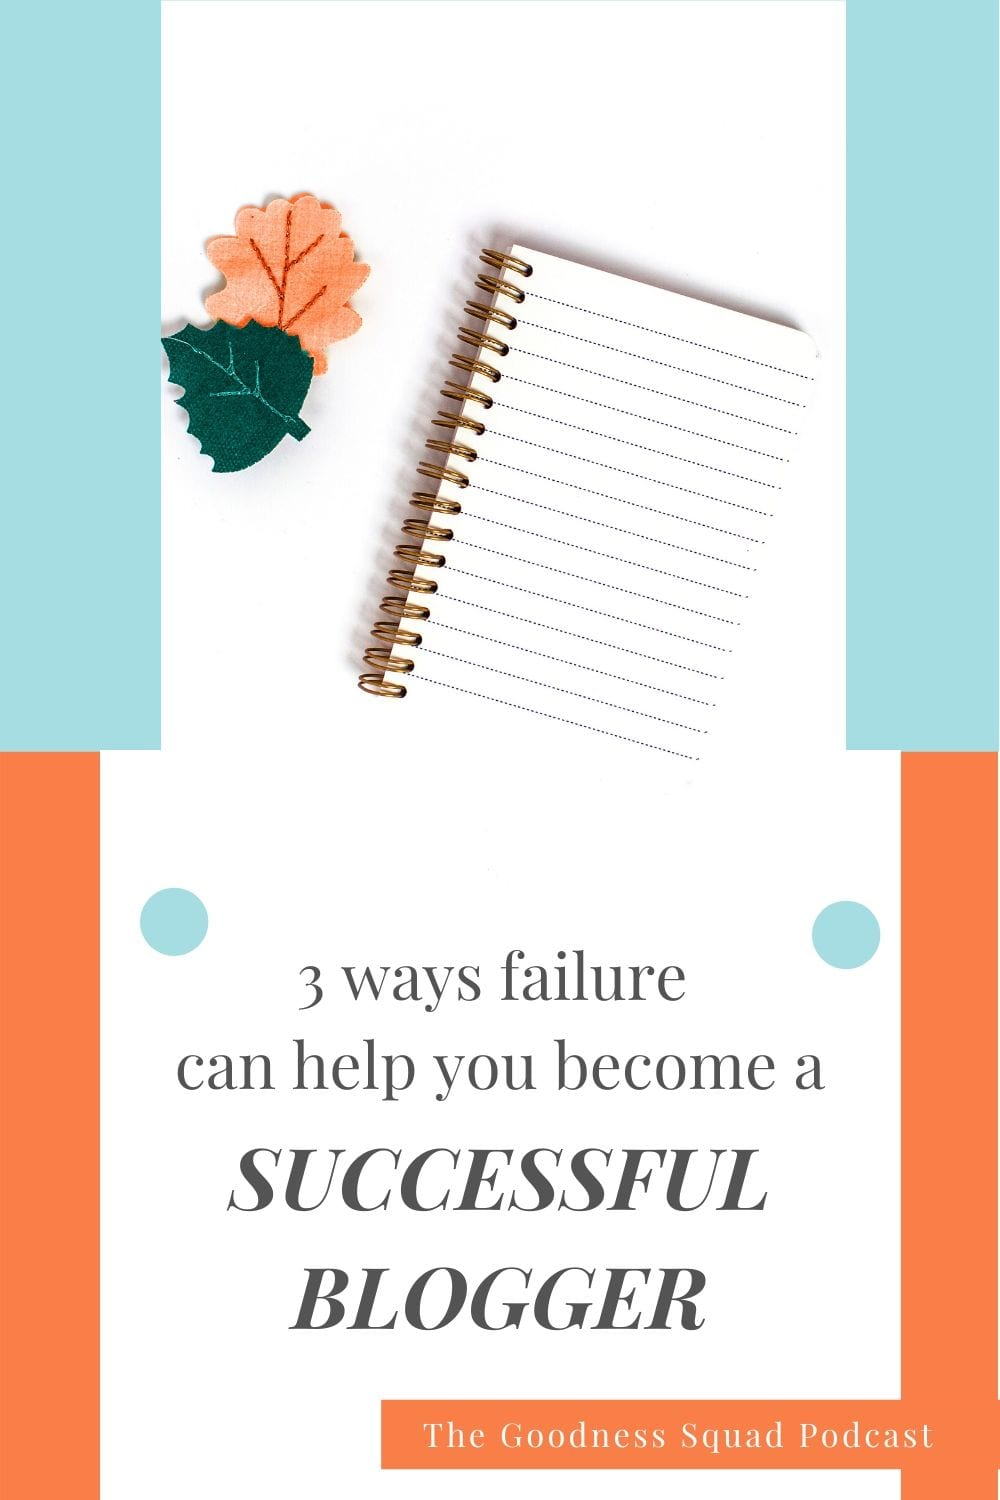 011_Failure is lessons learned. Success is lessons applied.